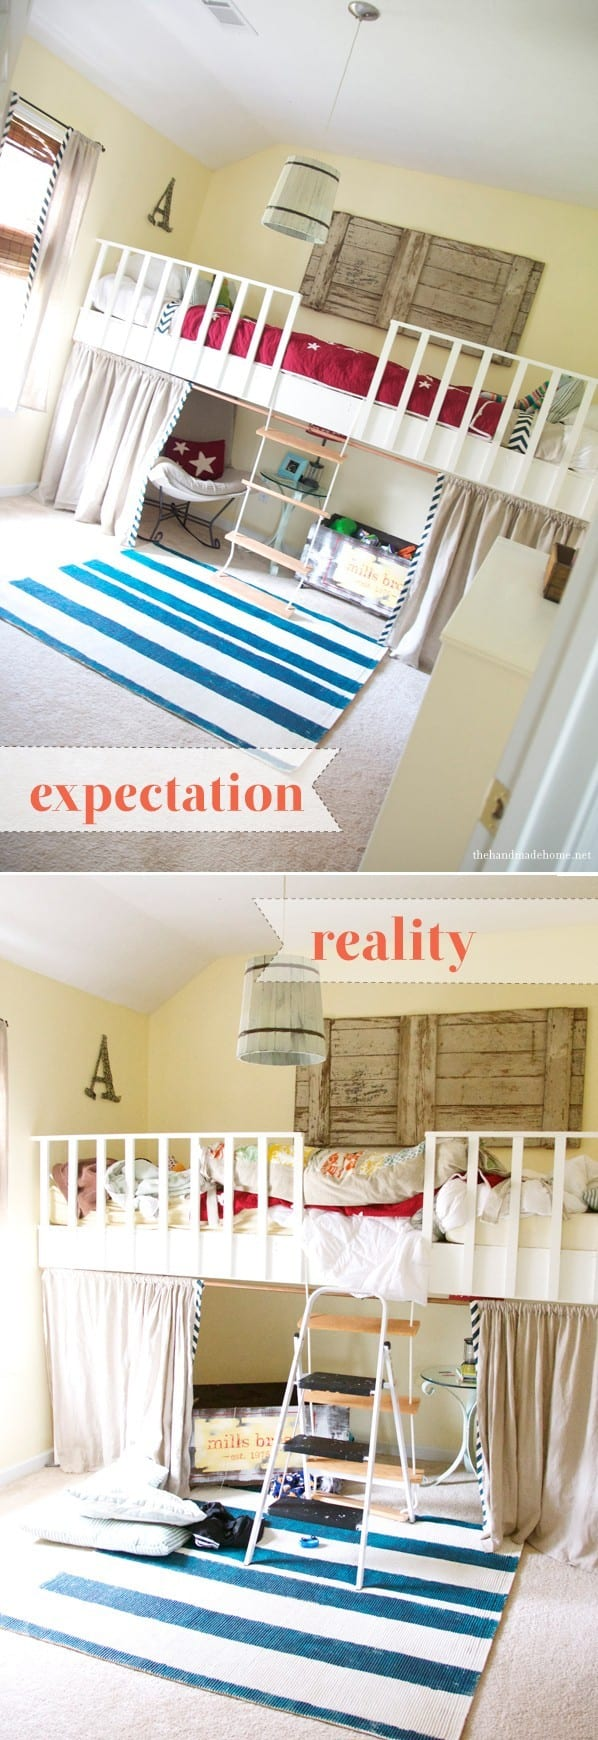 boys_room_expectations